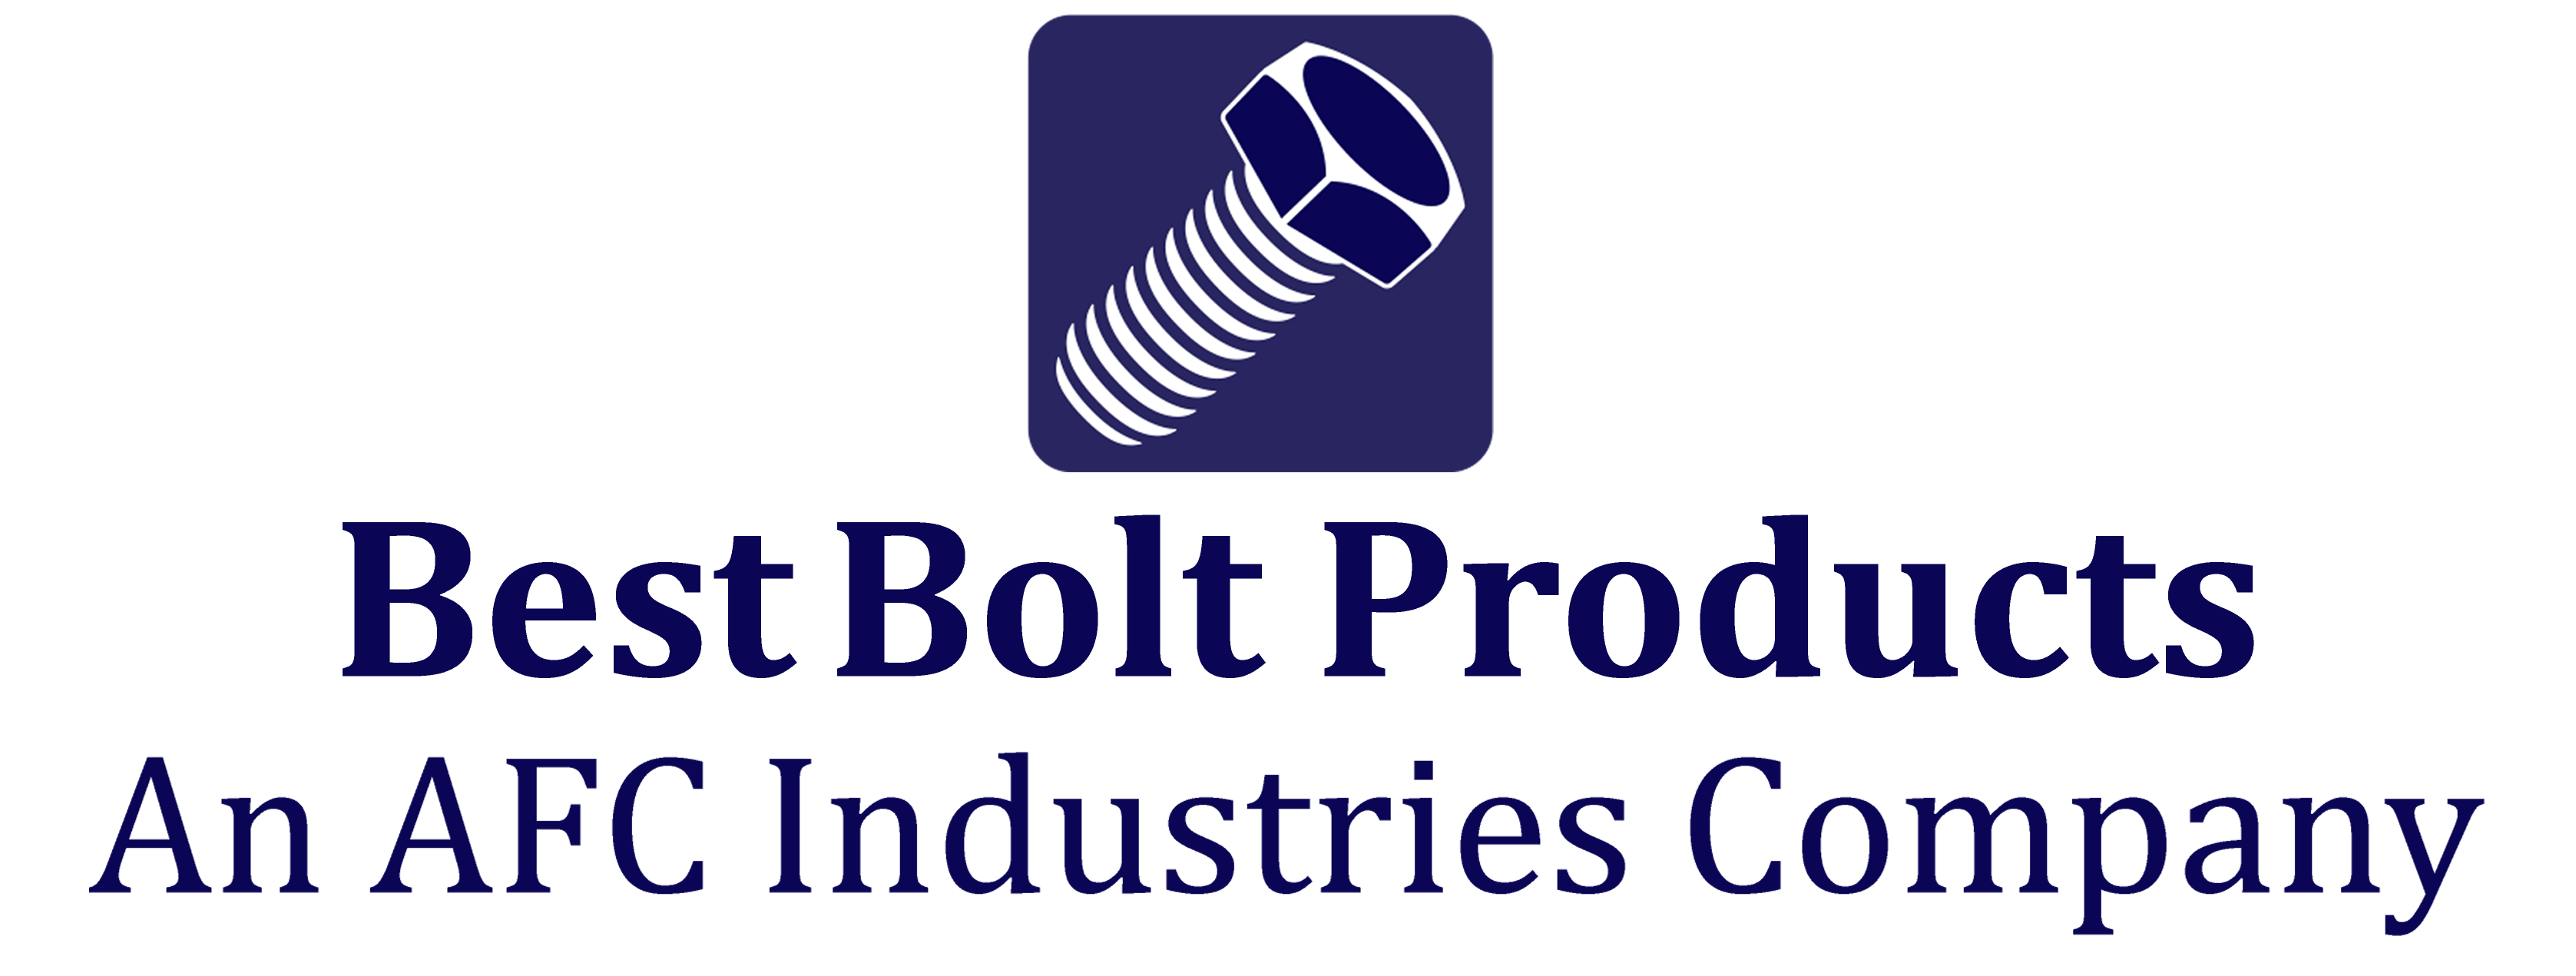 Best_Bolt_Products_centered_revision_17_oct_2017_final.png